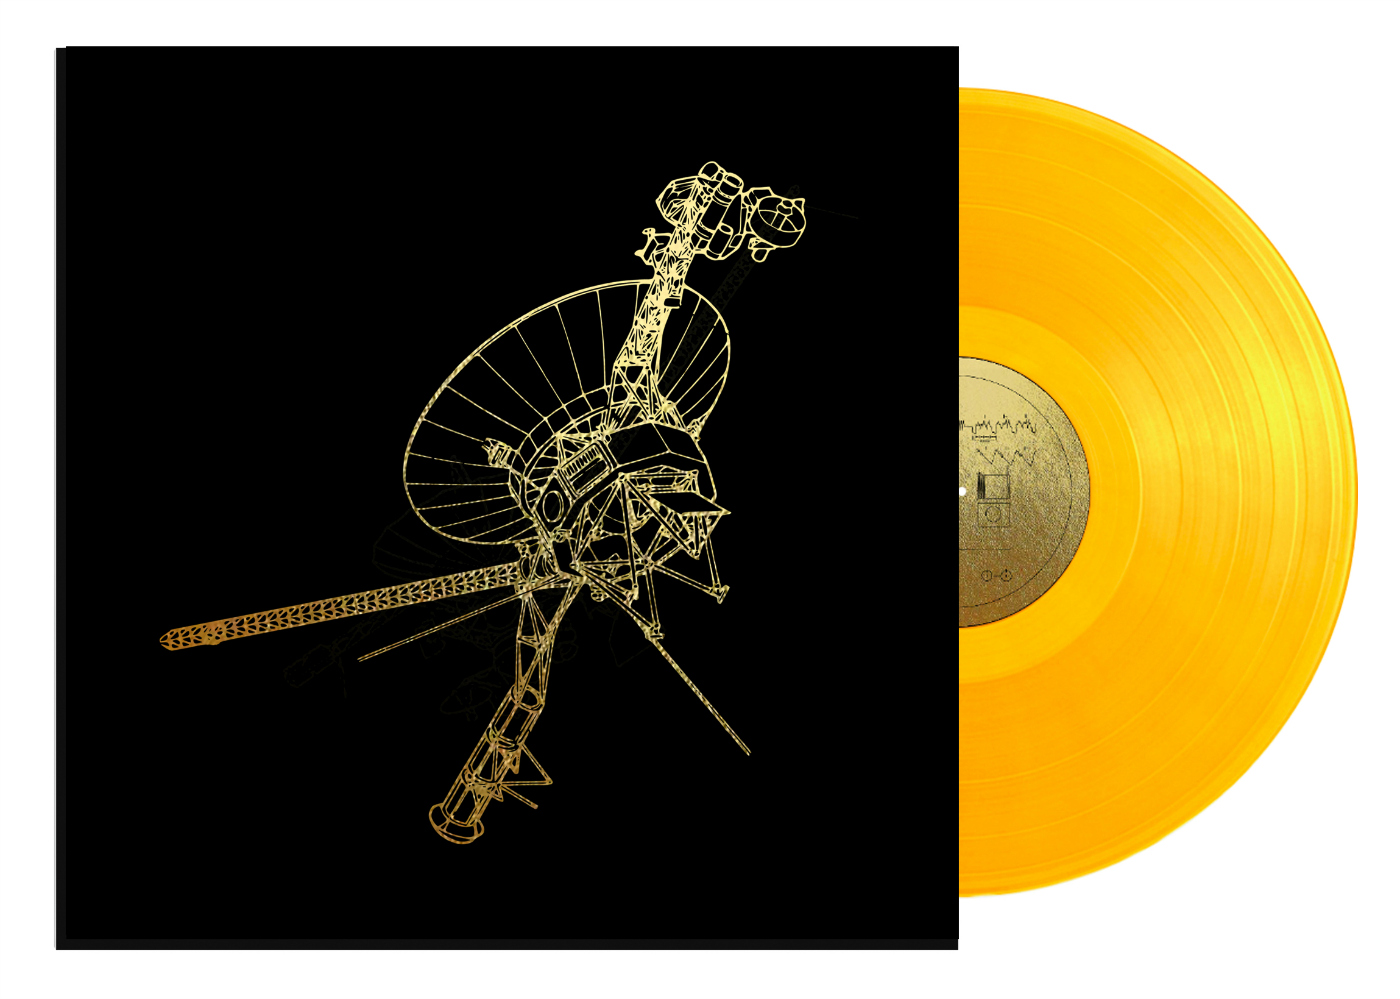 Reissuing the Voyager Golden Record, NASA's Quixotic ...